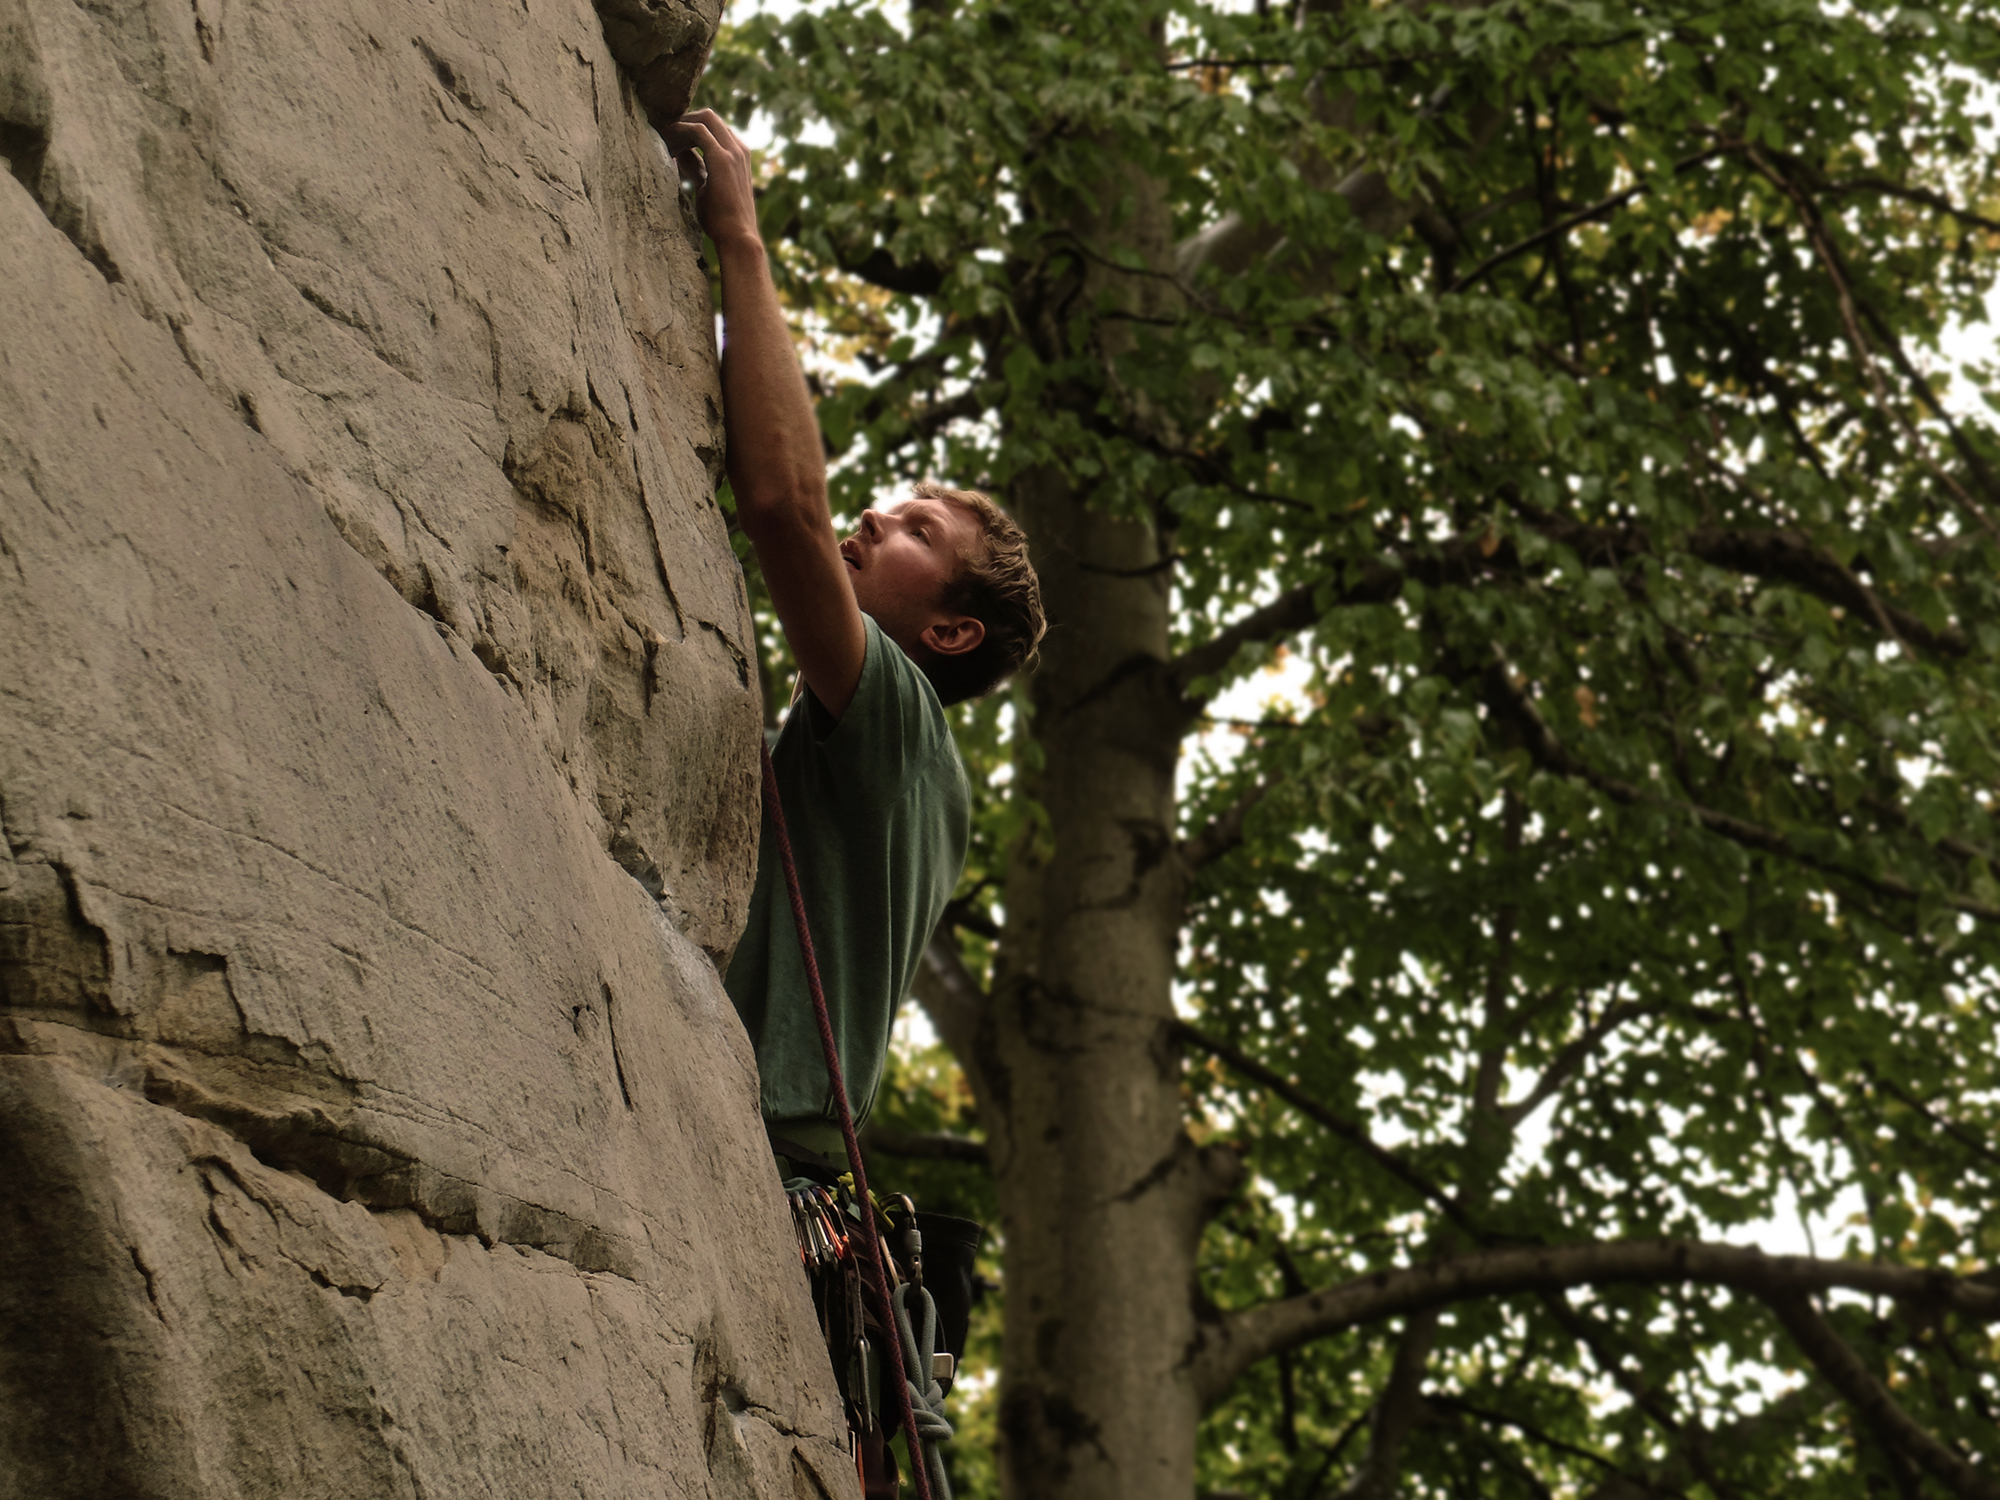 Brian on Rico Suave Arete (10a) at Kaymoor